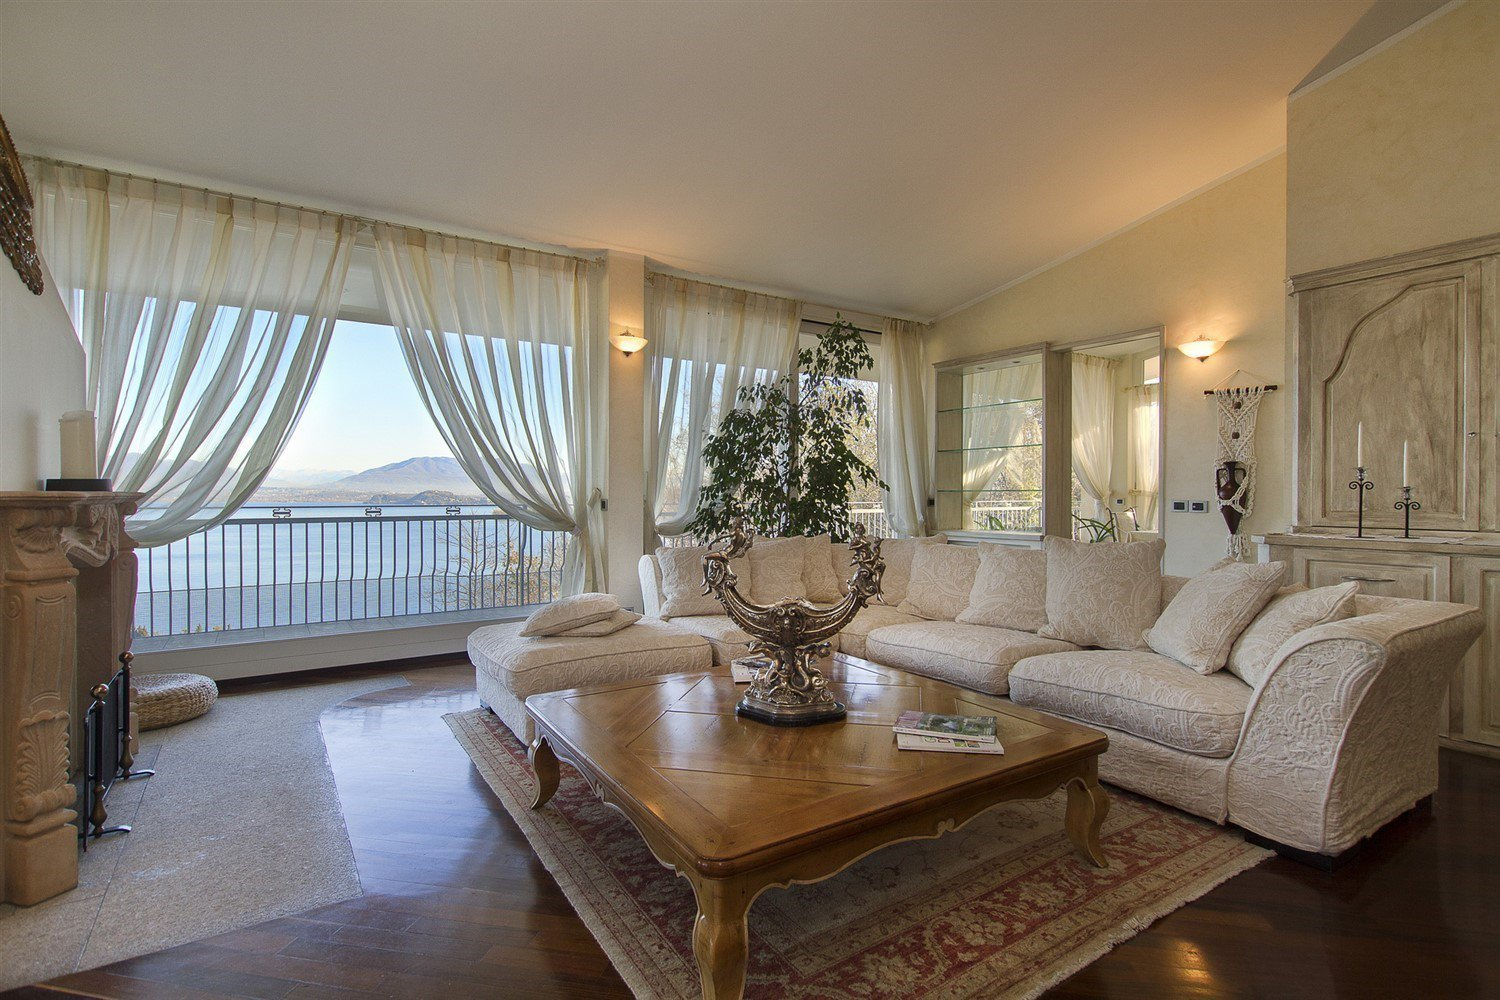 Luxury villa for sale in Meina - living room with a view